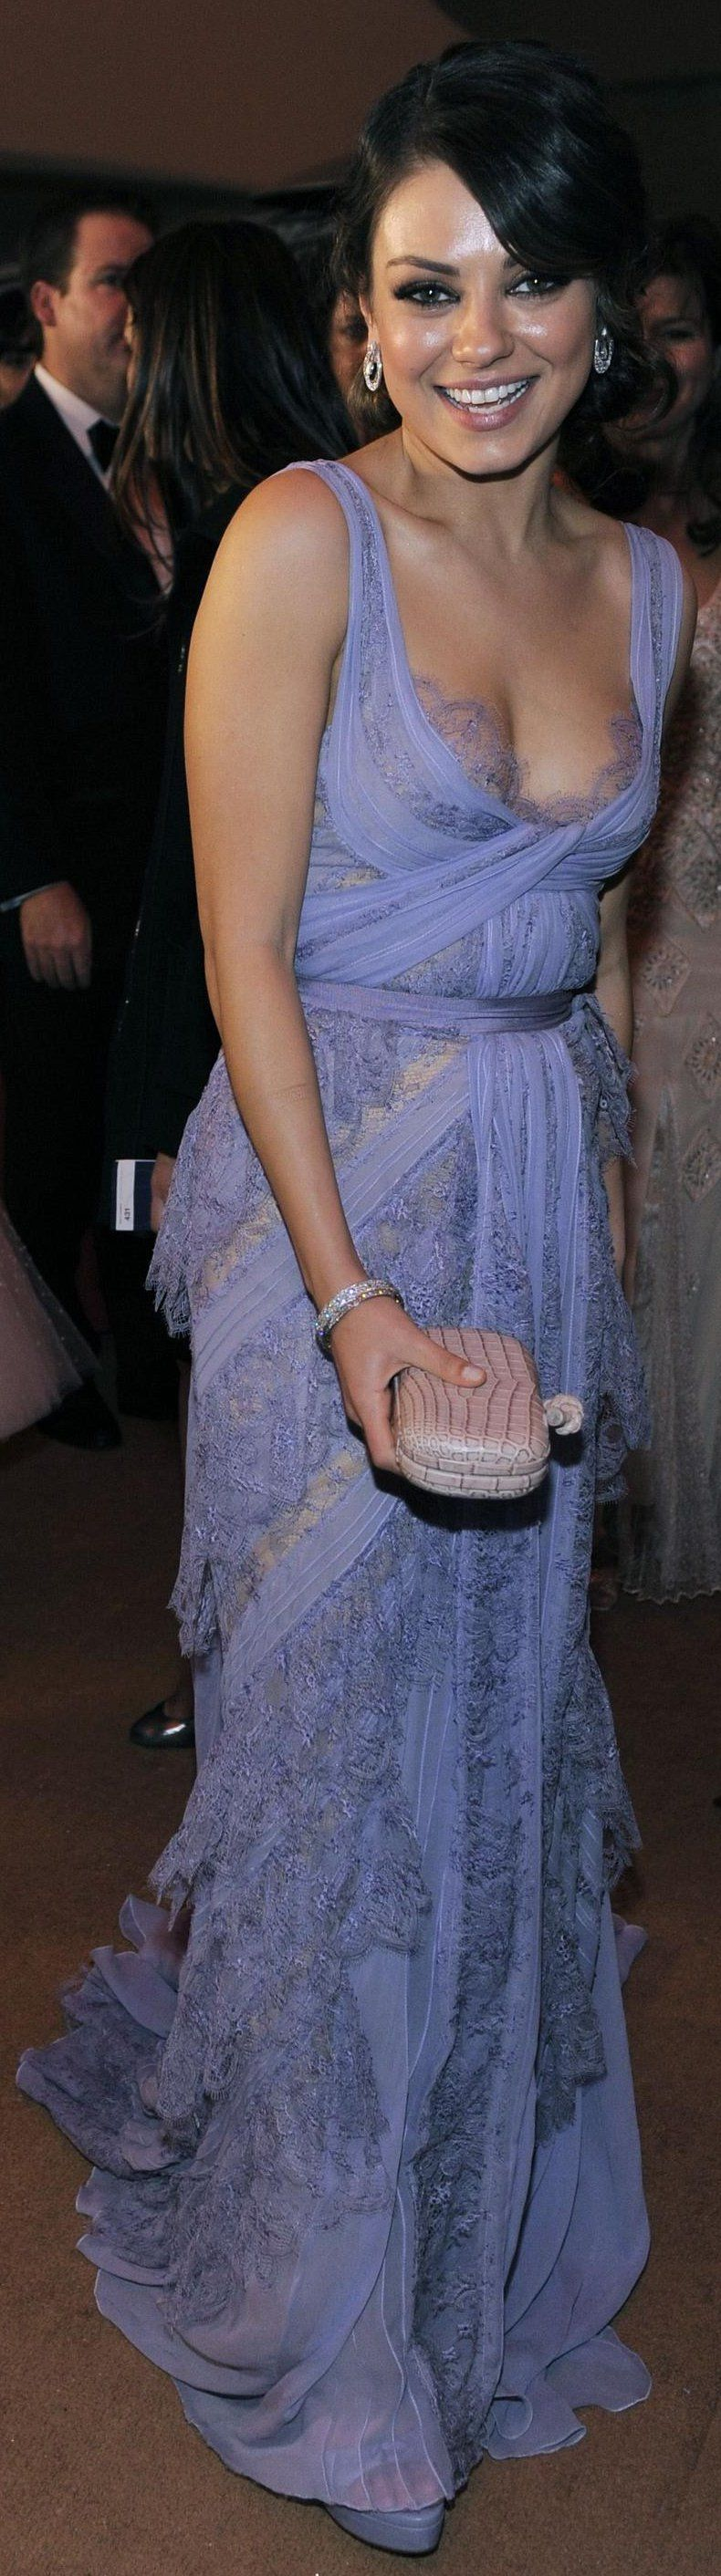 Mila kunis wedding dress  Ium gonna try to sew up this dress for Karenus wedding in Aug but in